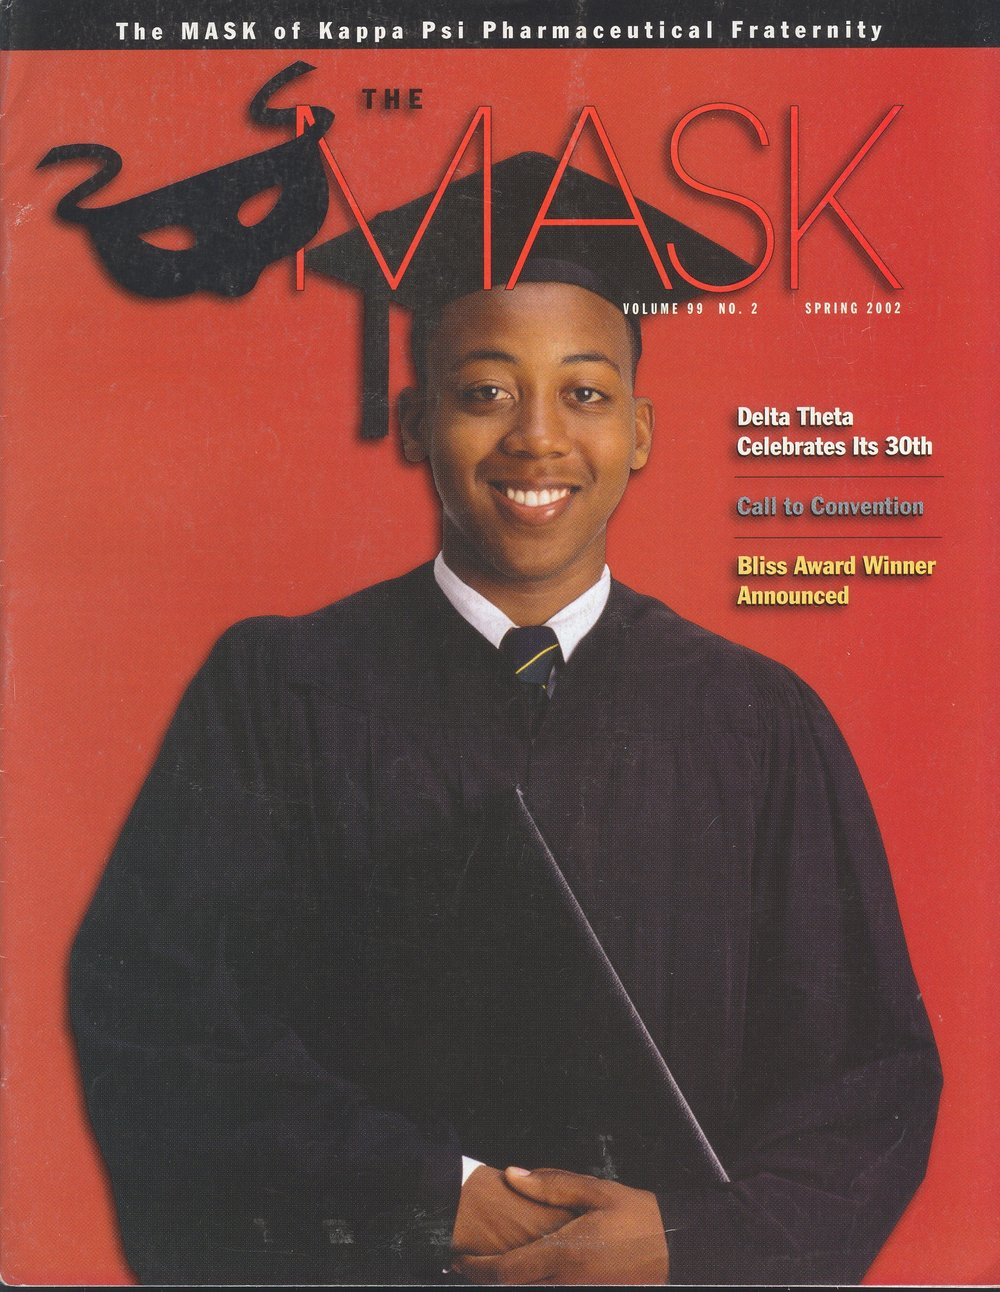 mask_cover_99-2_2002_spr.jpg